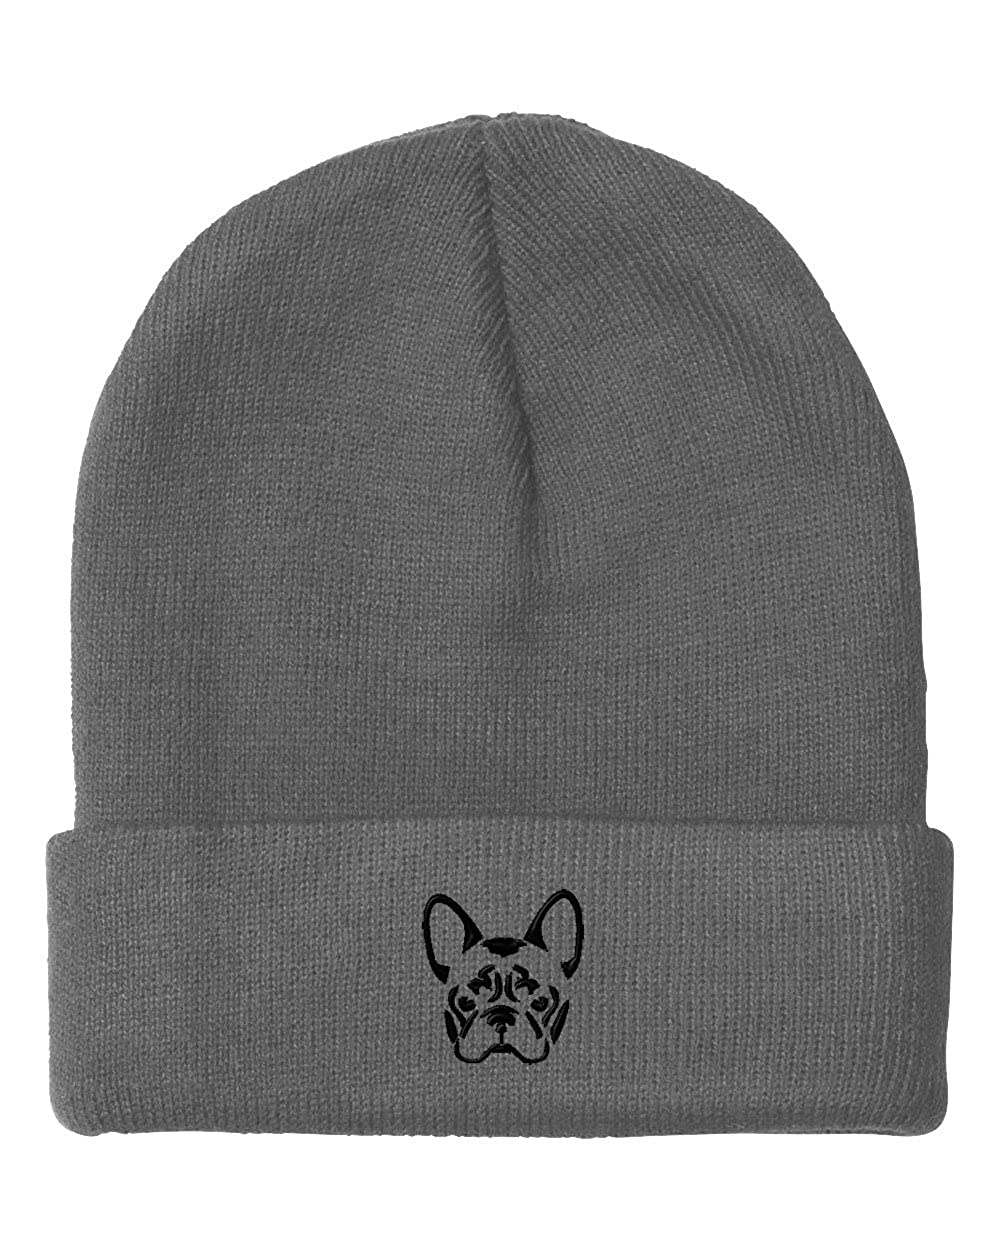 French Bulldog Silhouette Embroidery Embroidered Beanie Skully Hat Cap BNCEM0088_B